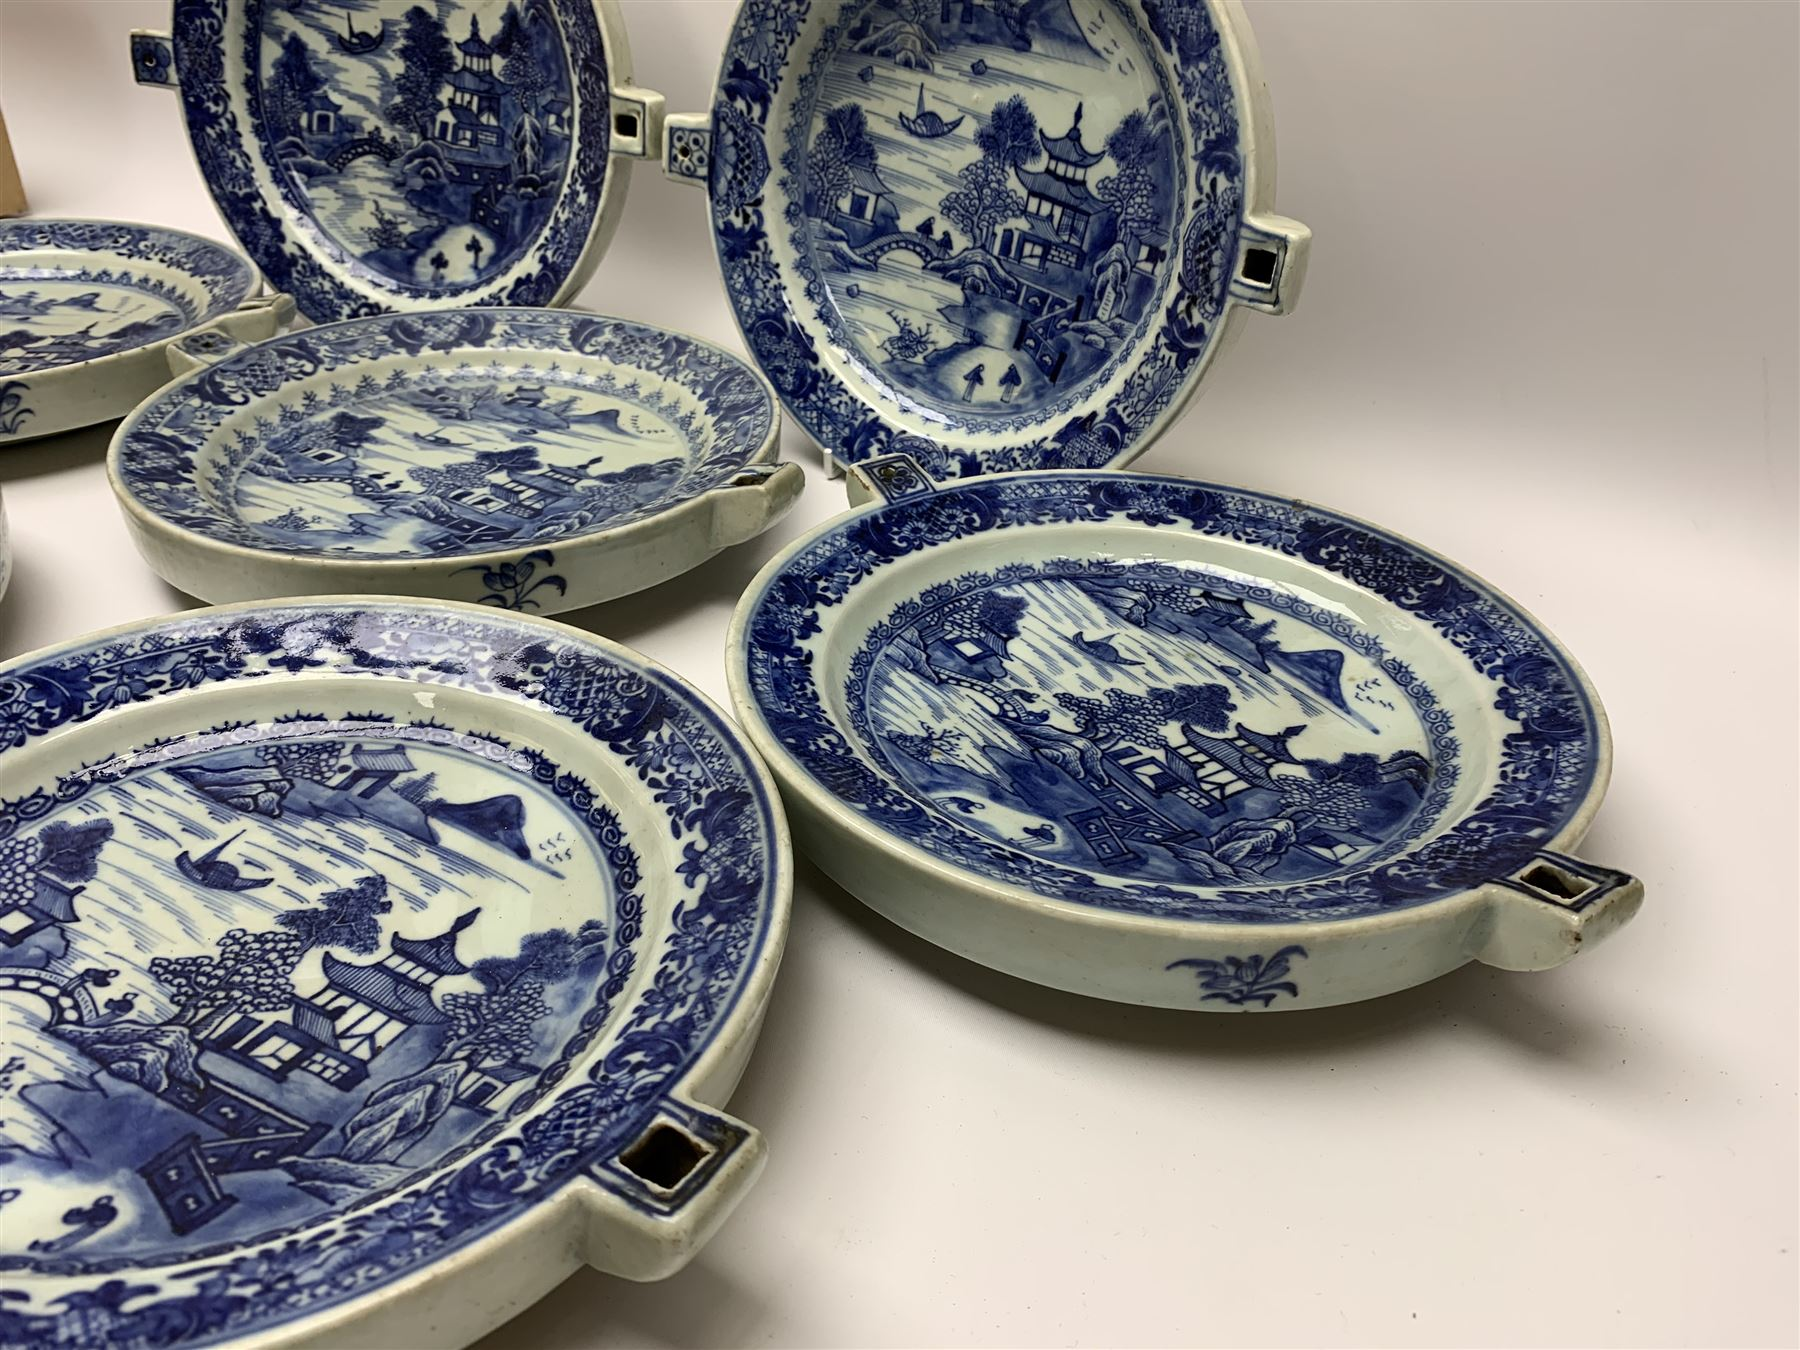 Set of seven late 18th/early 19th century Chinese export blue and white hot water plates - Image 2 of 11